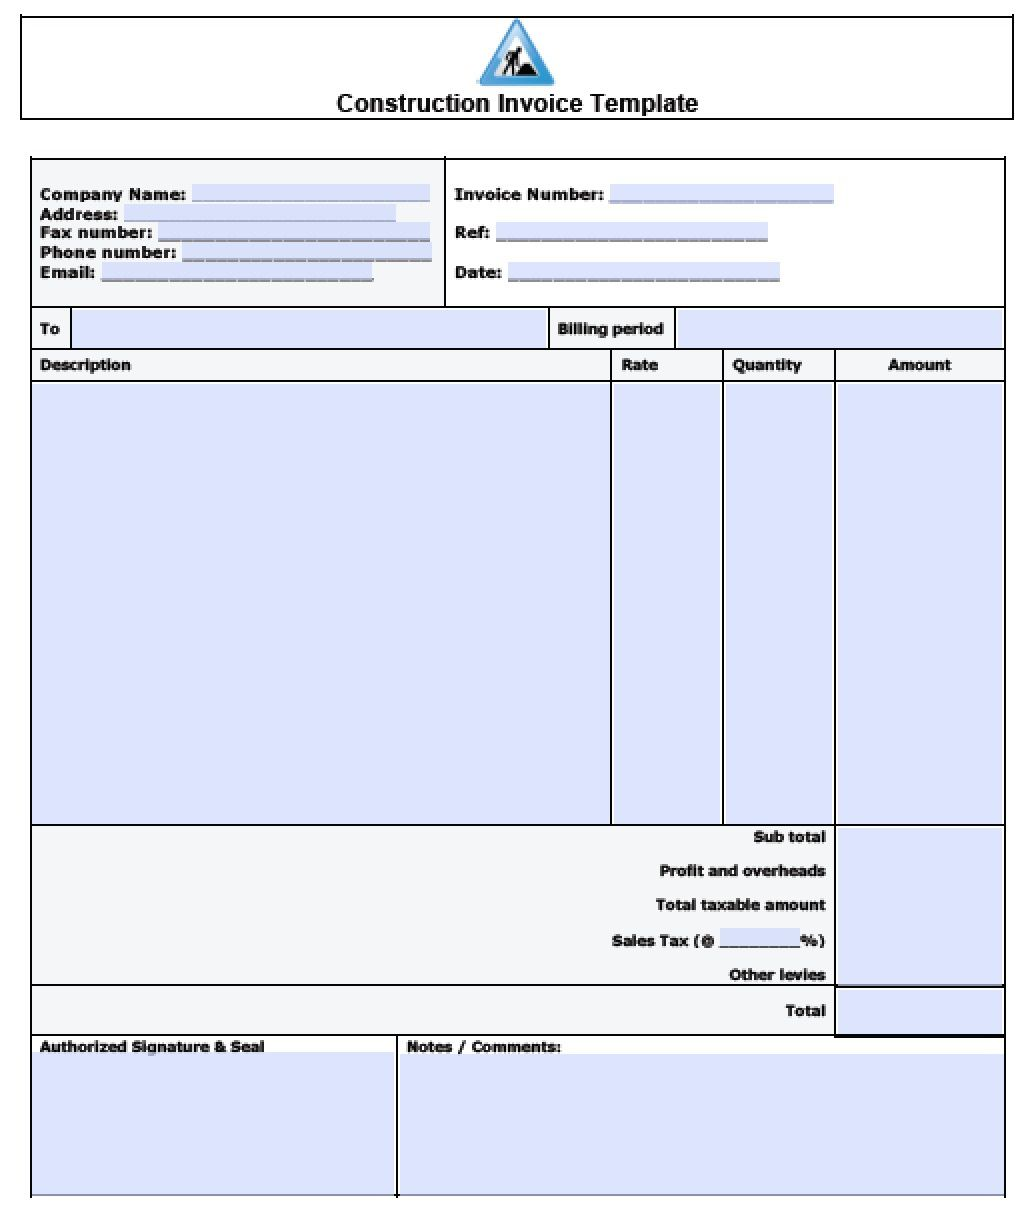 005 Outstanding Invoice Template Free Download Concept  Apple PdfFull